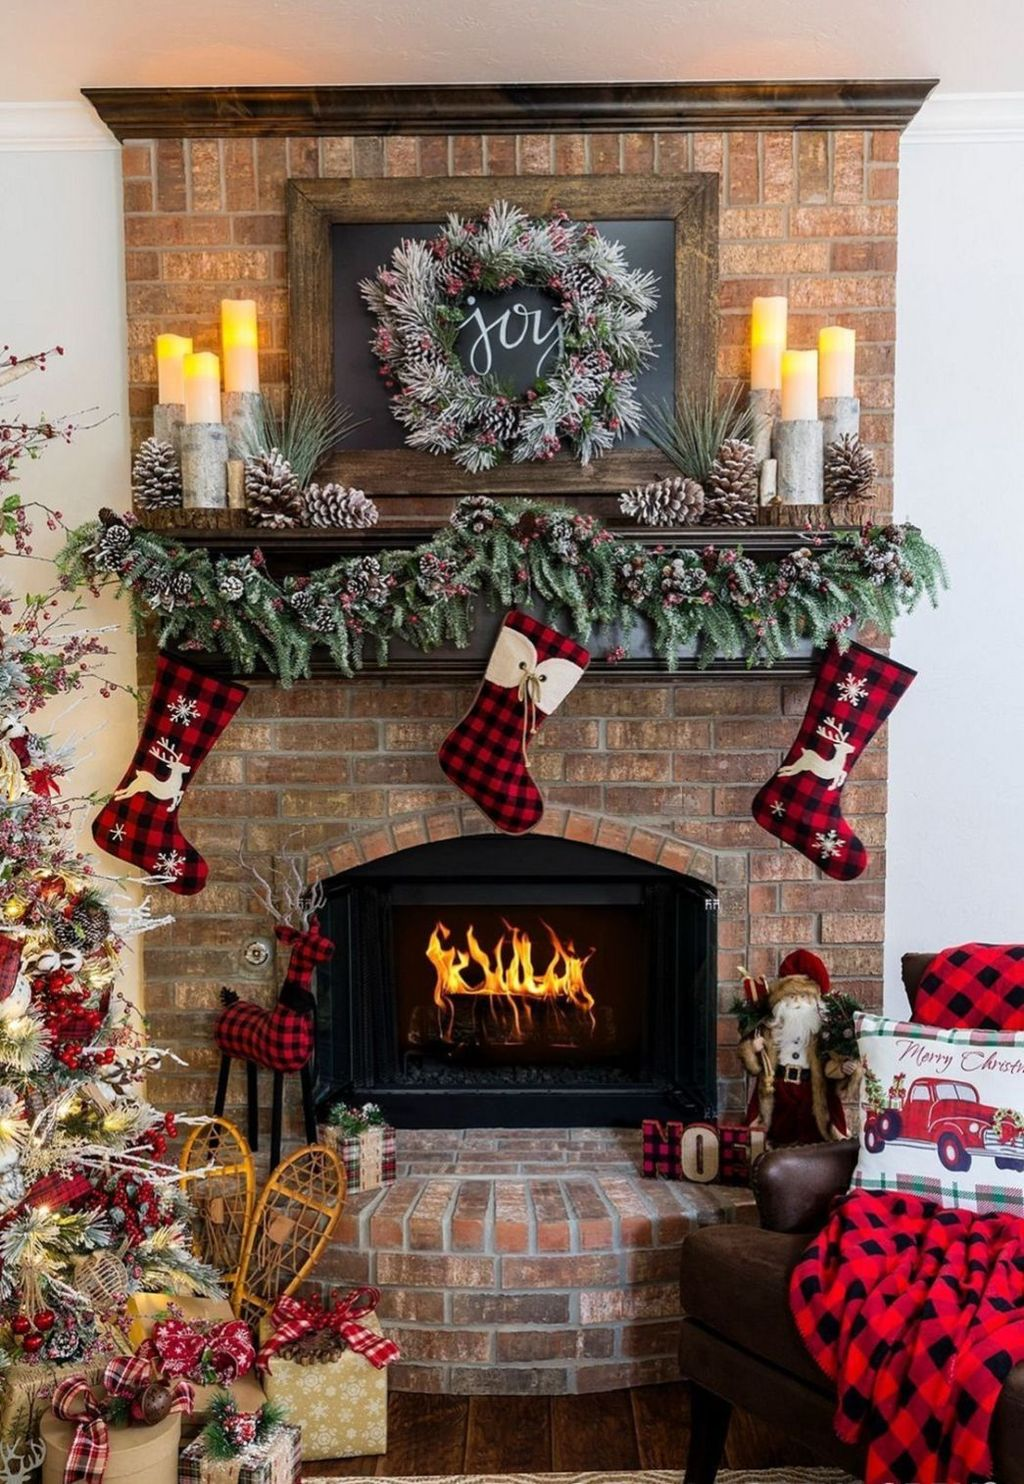 Popular Christmas Fireplace Mantel Decorations That You Like 04